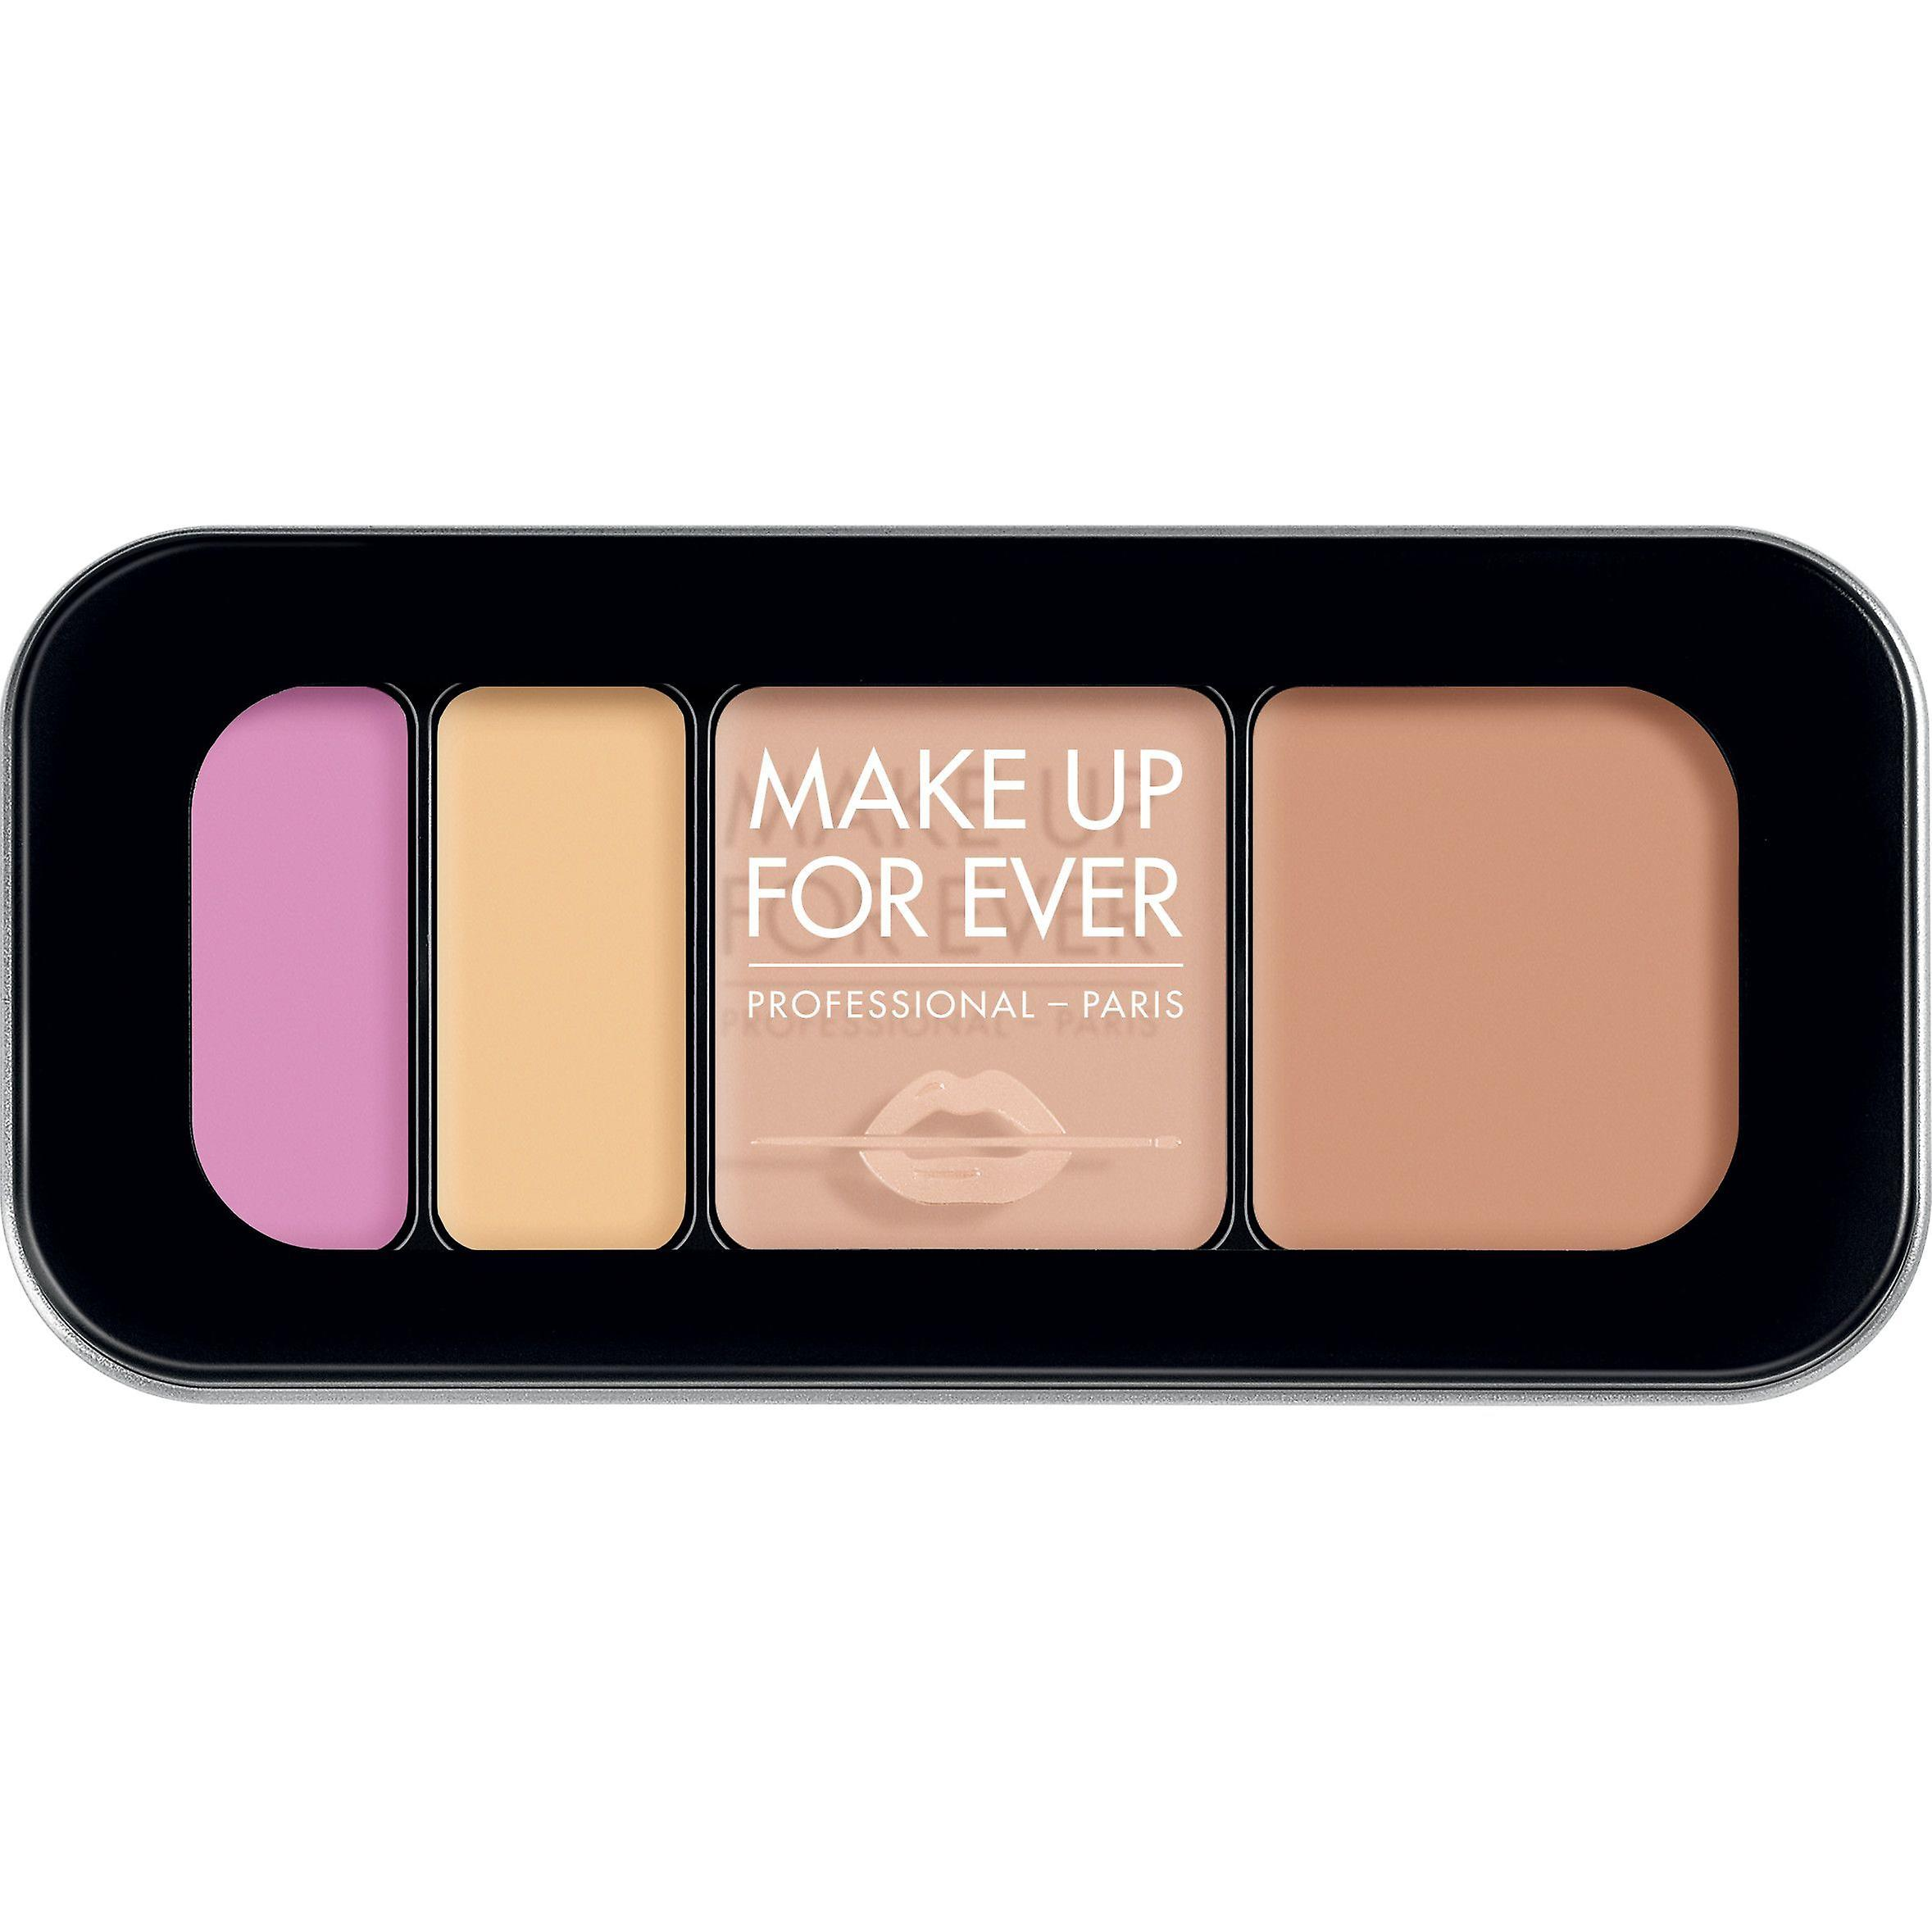 Ultra HD Underpainting - Color Correcting Palette - Very Light Skin 20